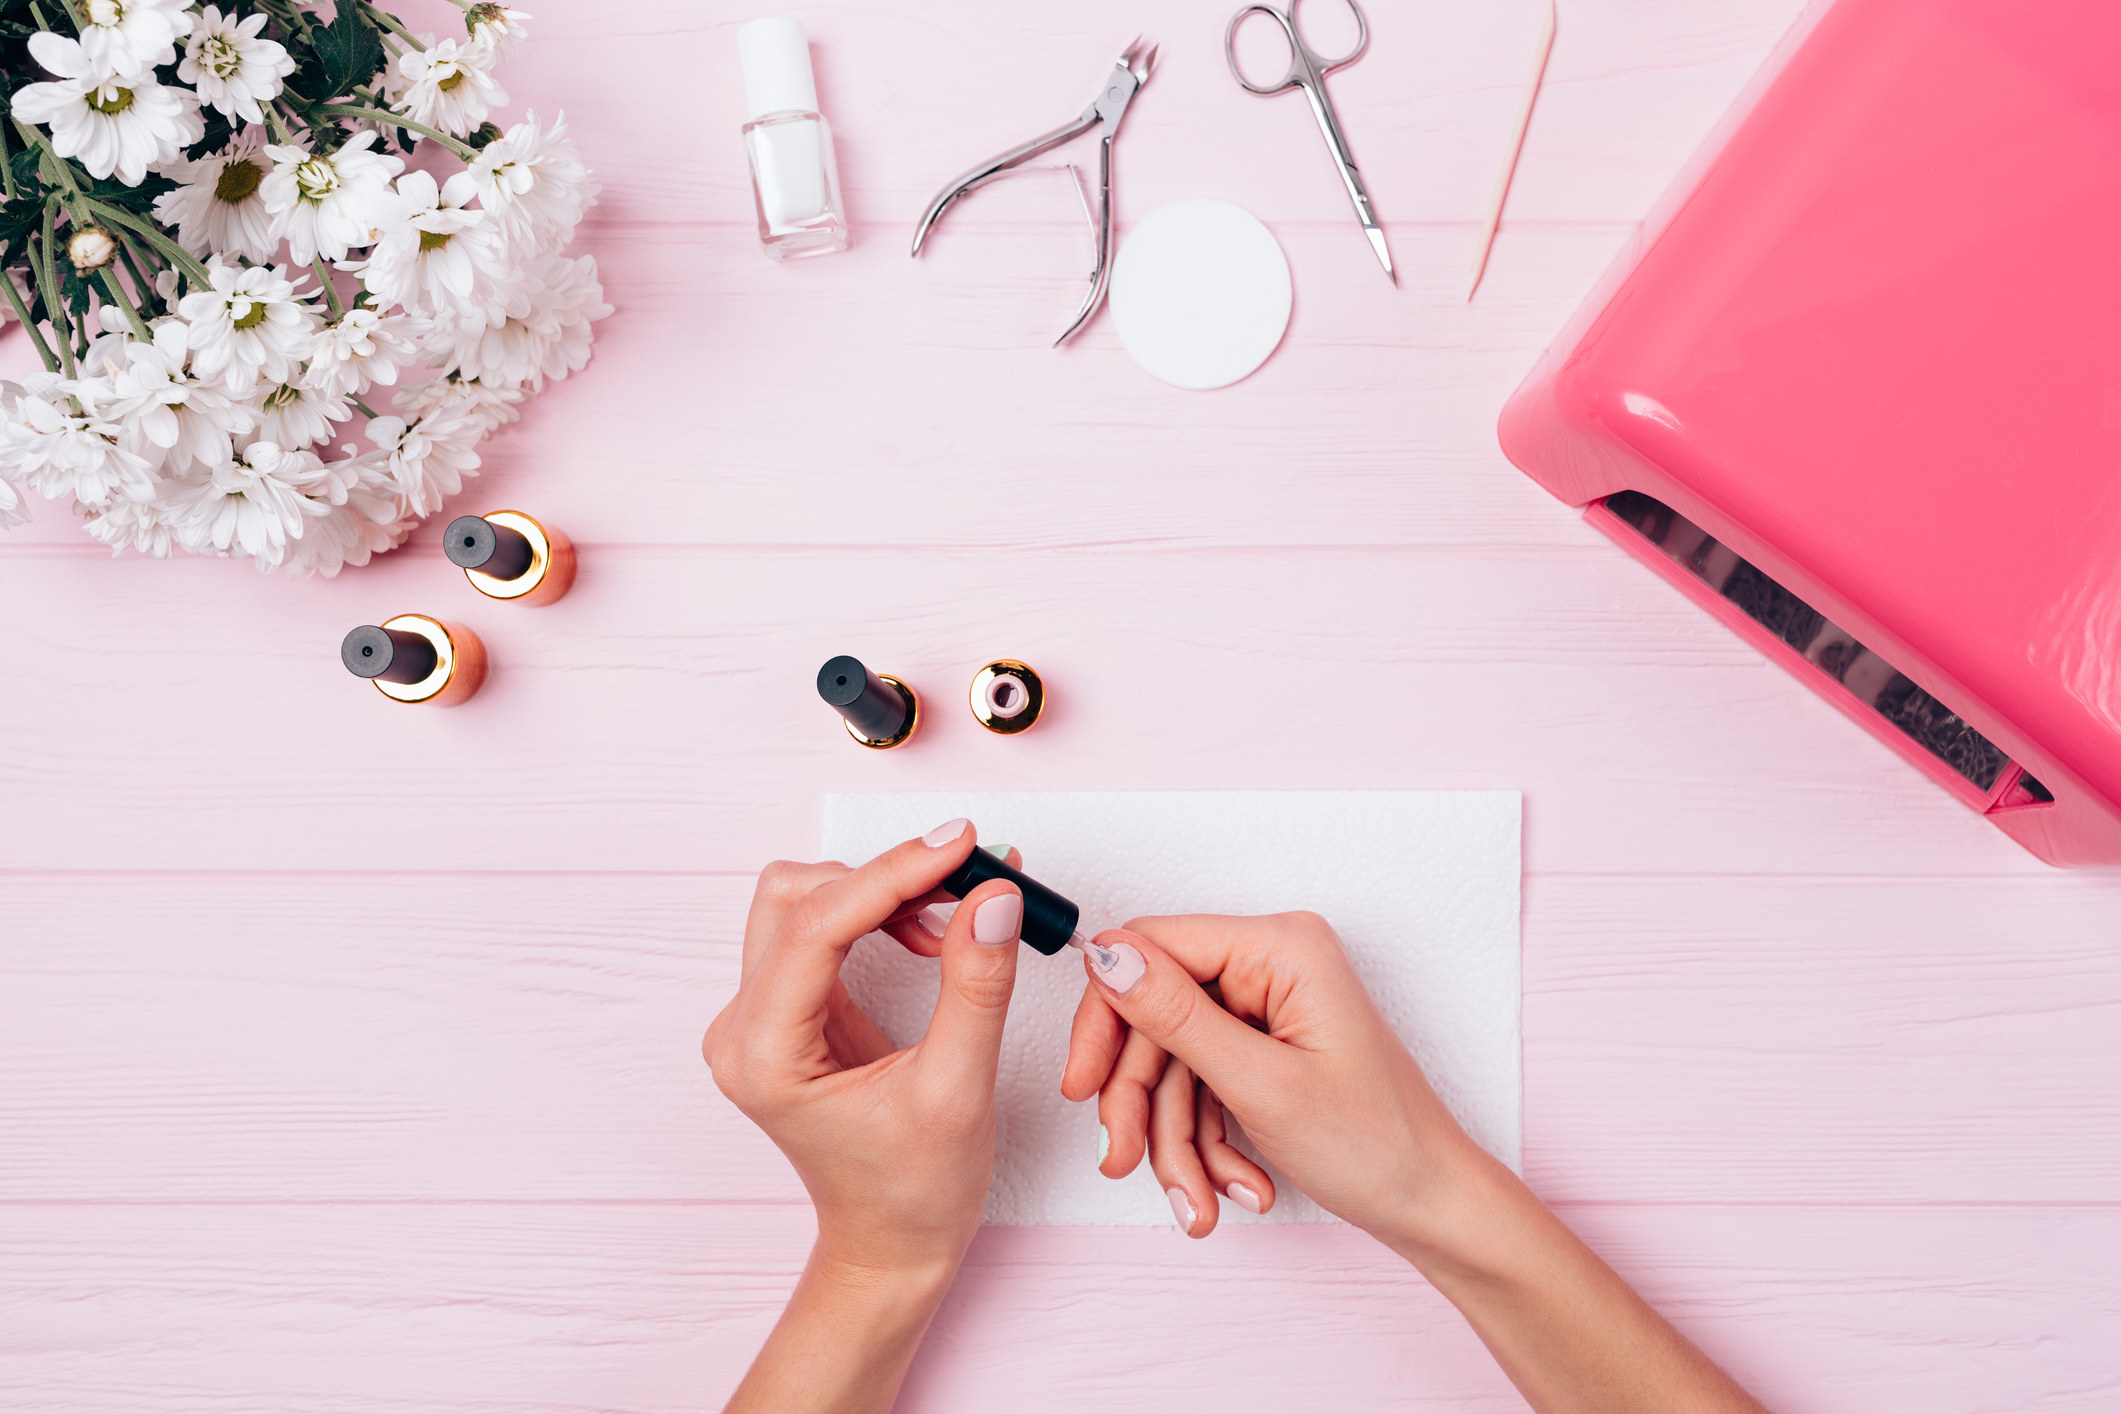 photo of someone painting their nails a light pink color on top of a light pink wooden table, on the table is also a manicure set and additional nail polish with white flowers on the top left and a uv gel monitor on the right side